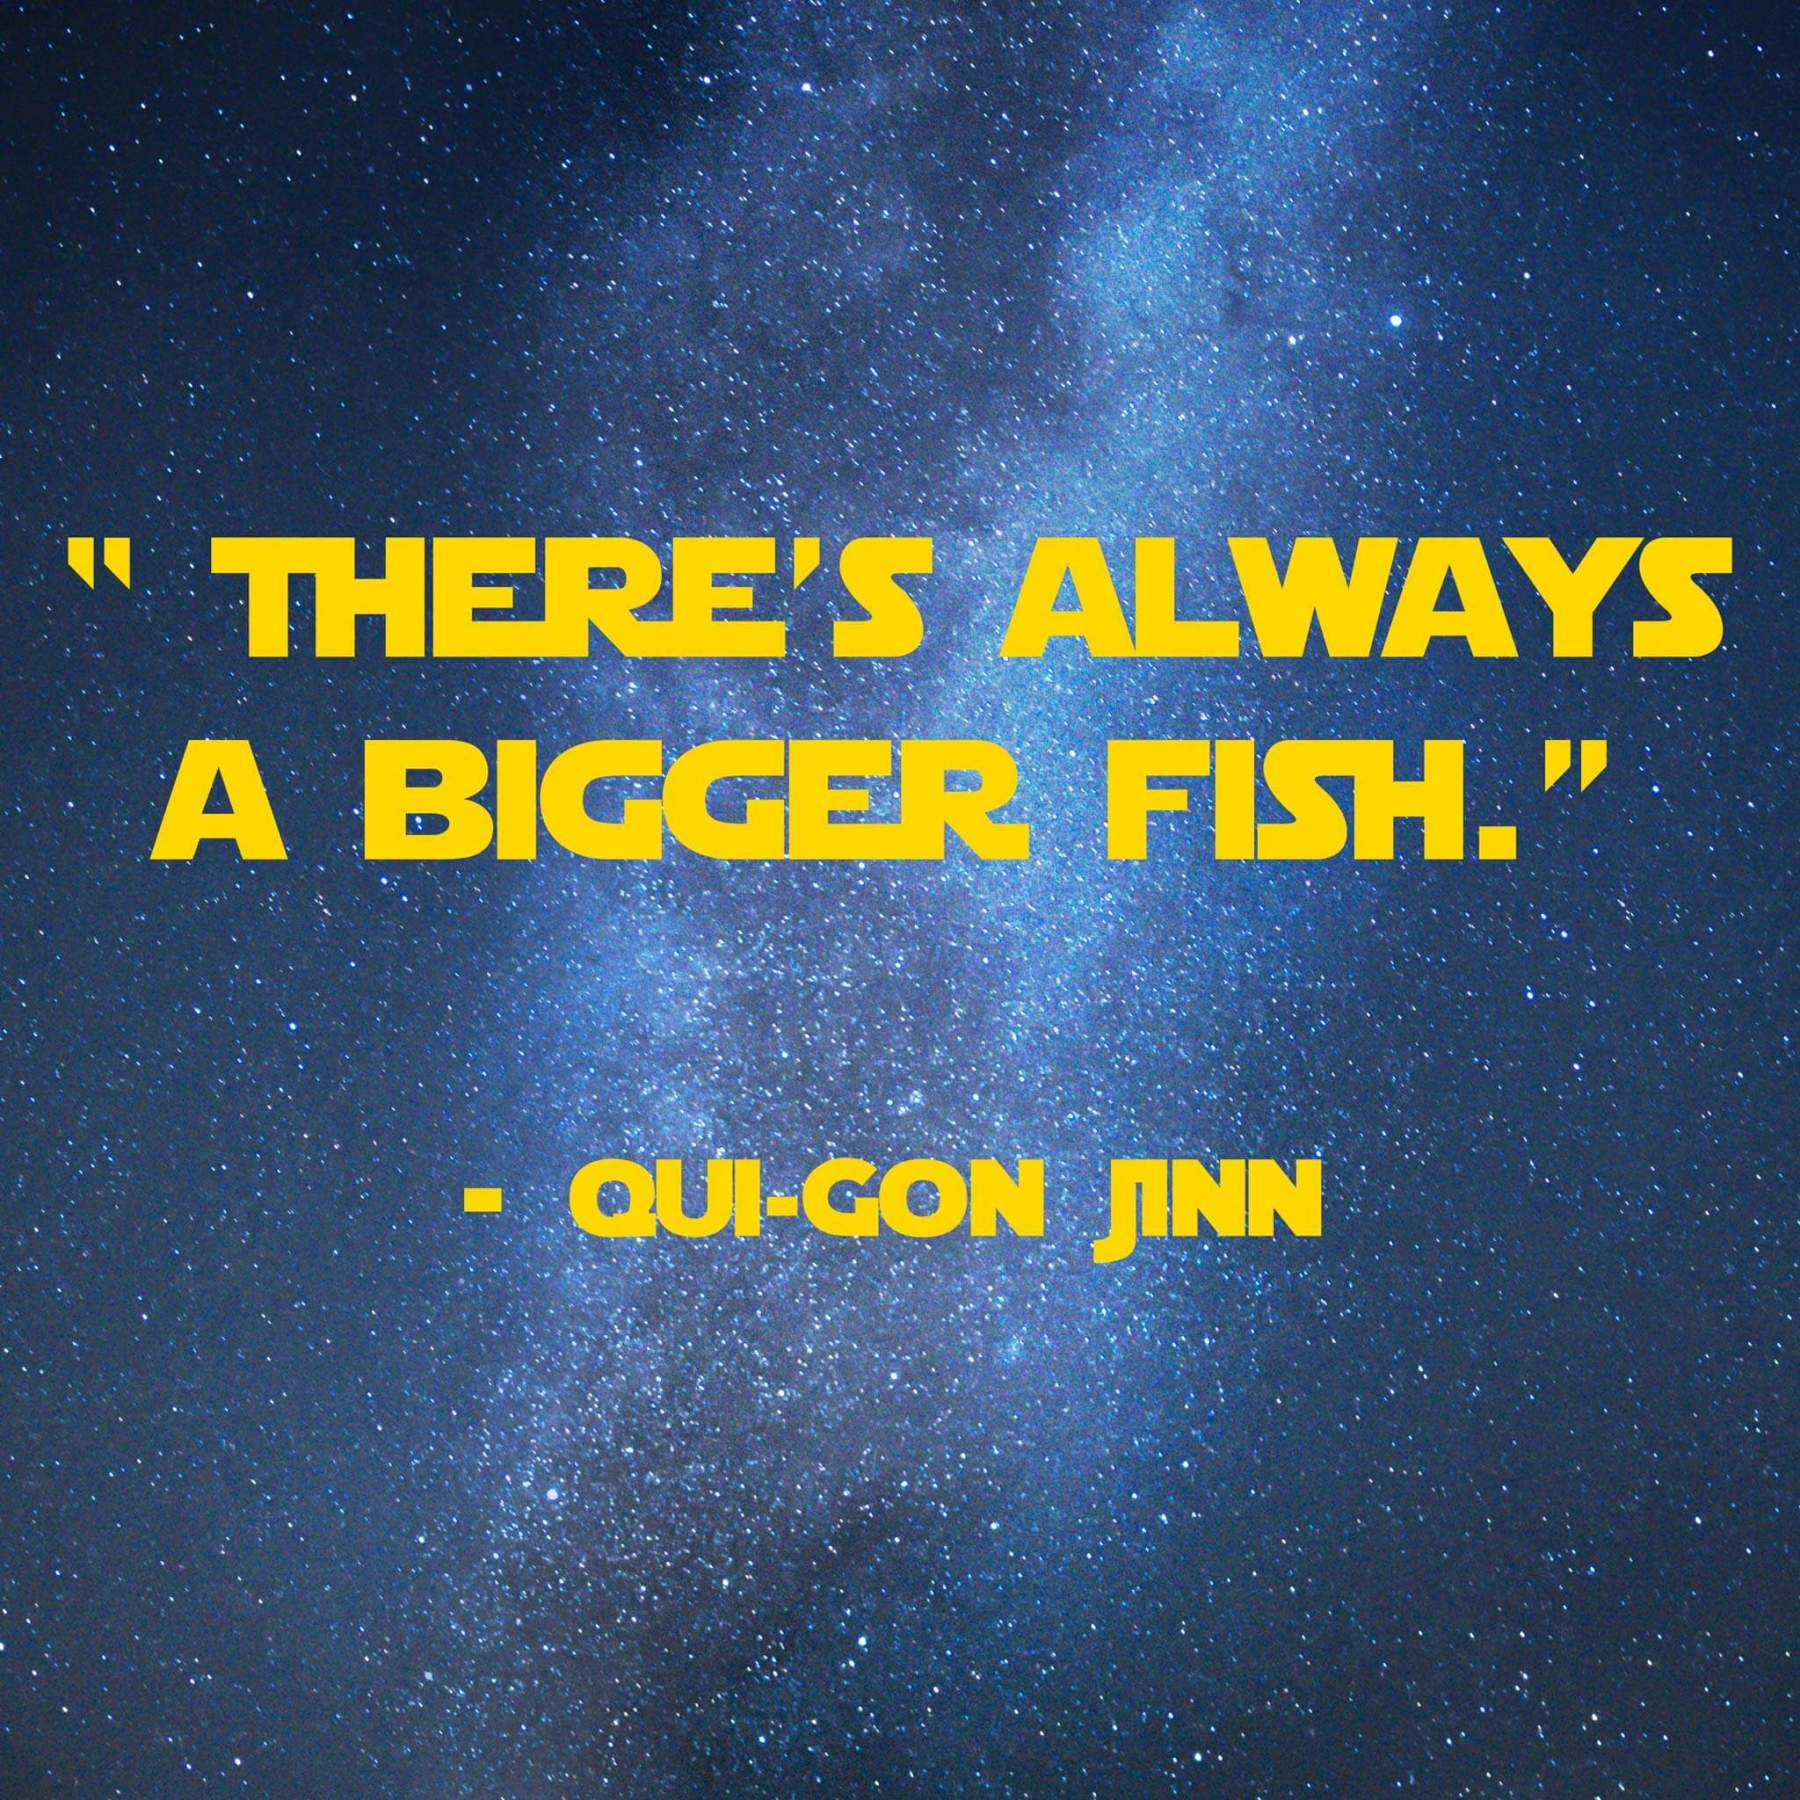 theres-always-a-bigger-fish | 31 Memorable Star Wars Quotes for Geeks